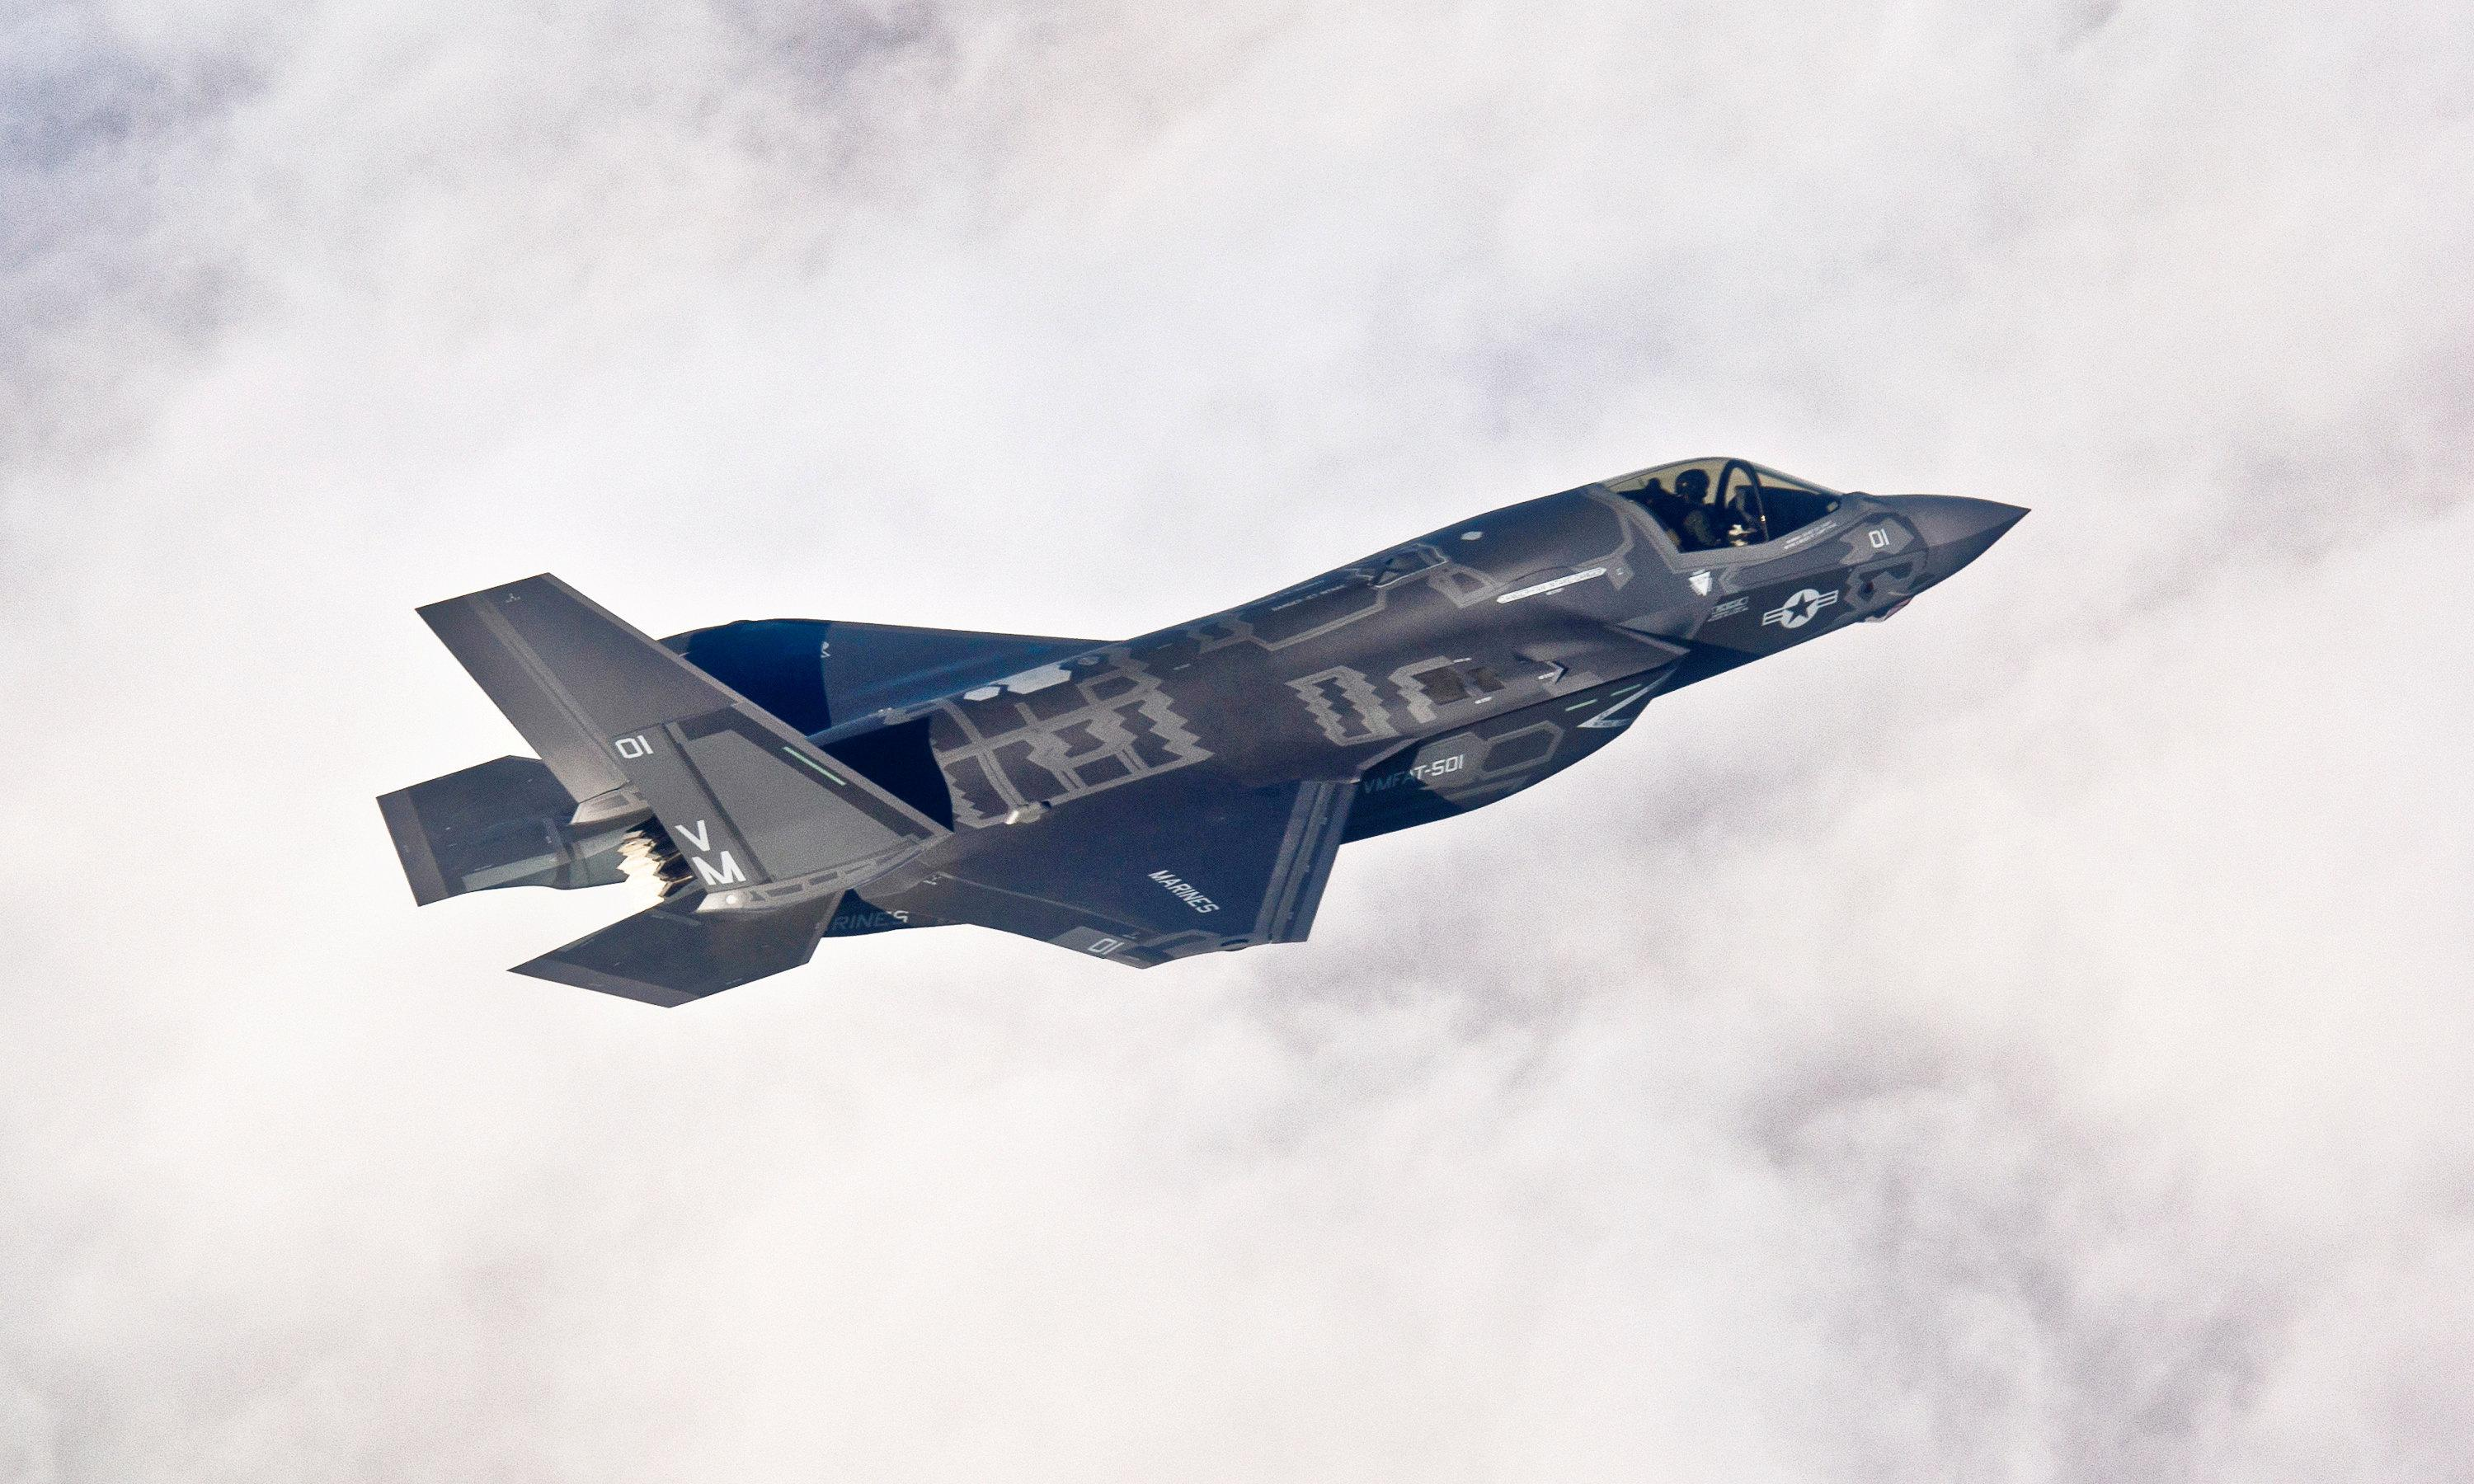 Weatherwatch: F-35 fighter's worst enemy could be lightning